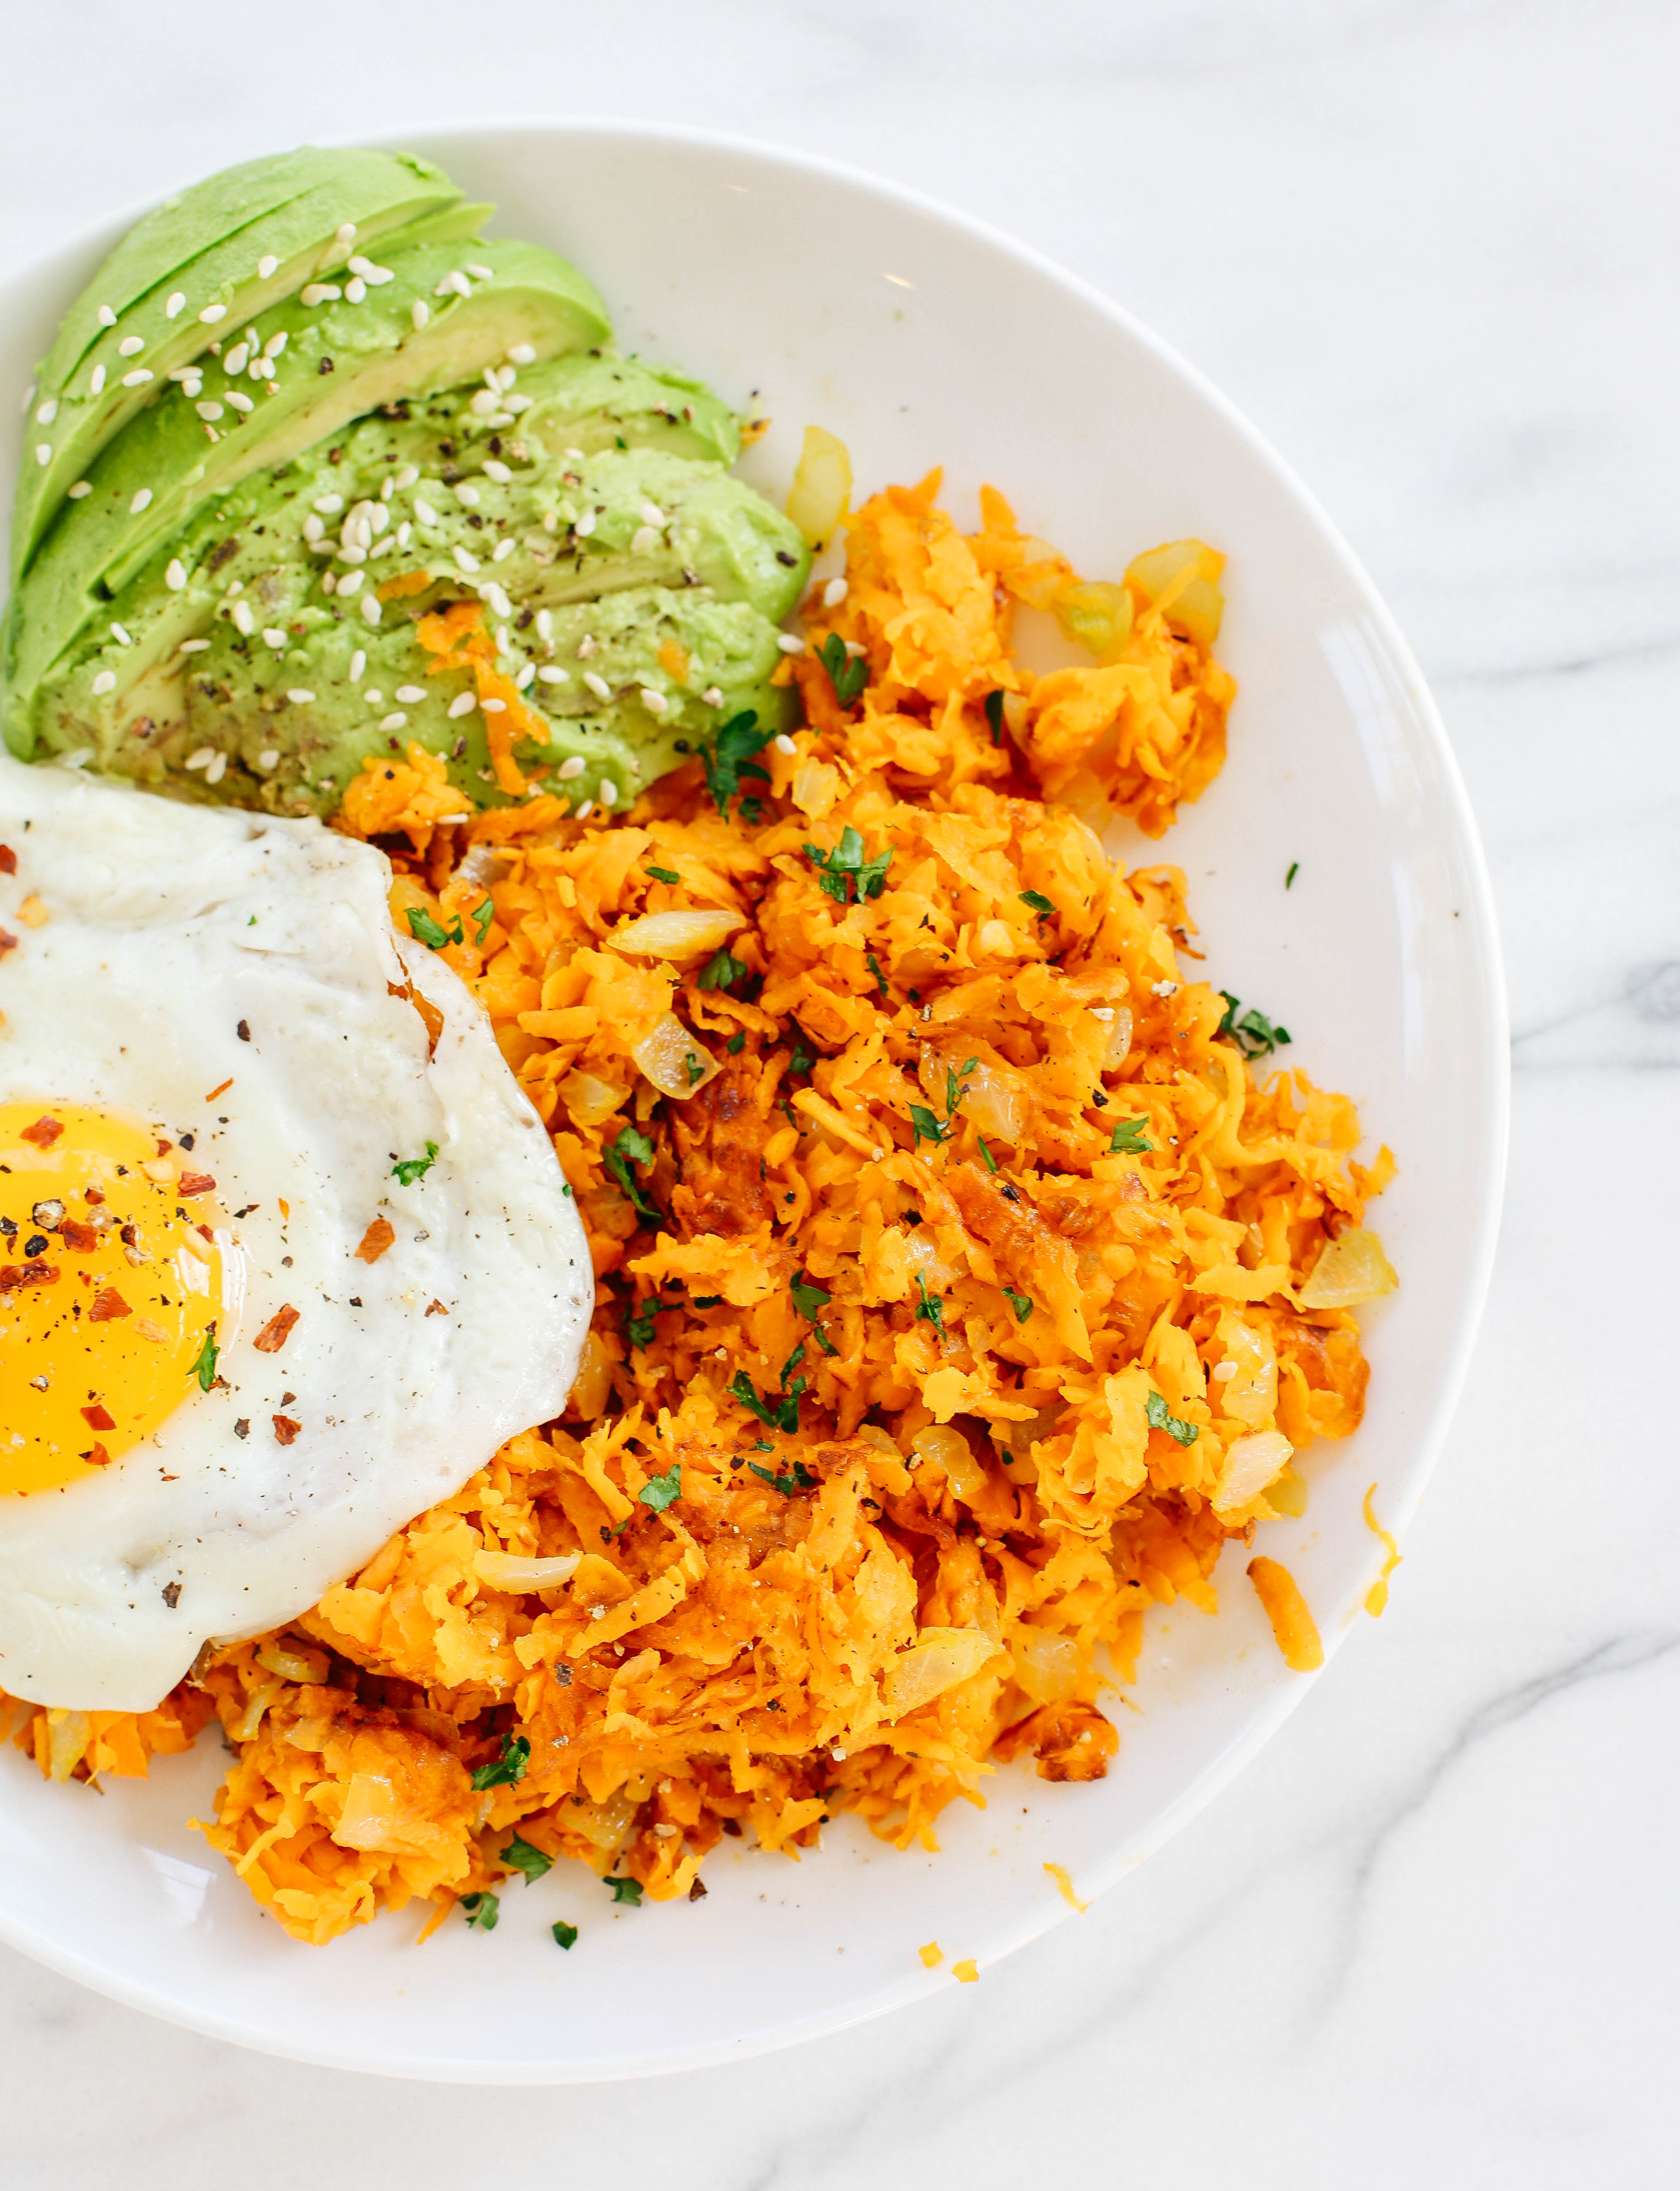 Win at breakfast with these quick and easy Sweet Potato Hashbrowns that are seasoned to perfection with cinnamon and chili powder for a delicious sweet and spicy combo!